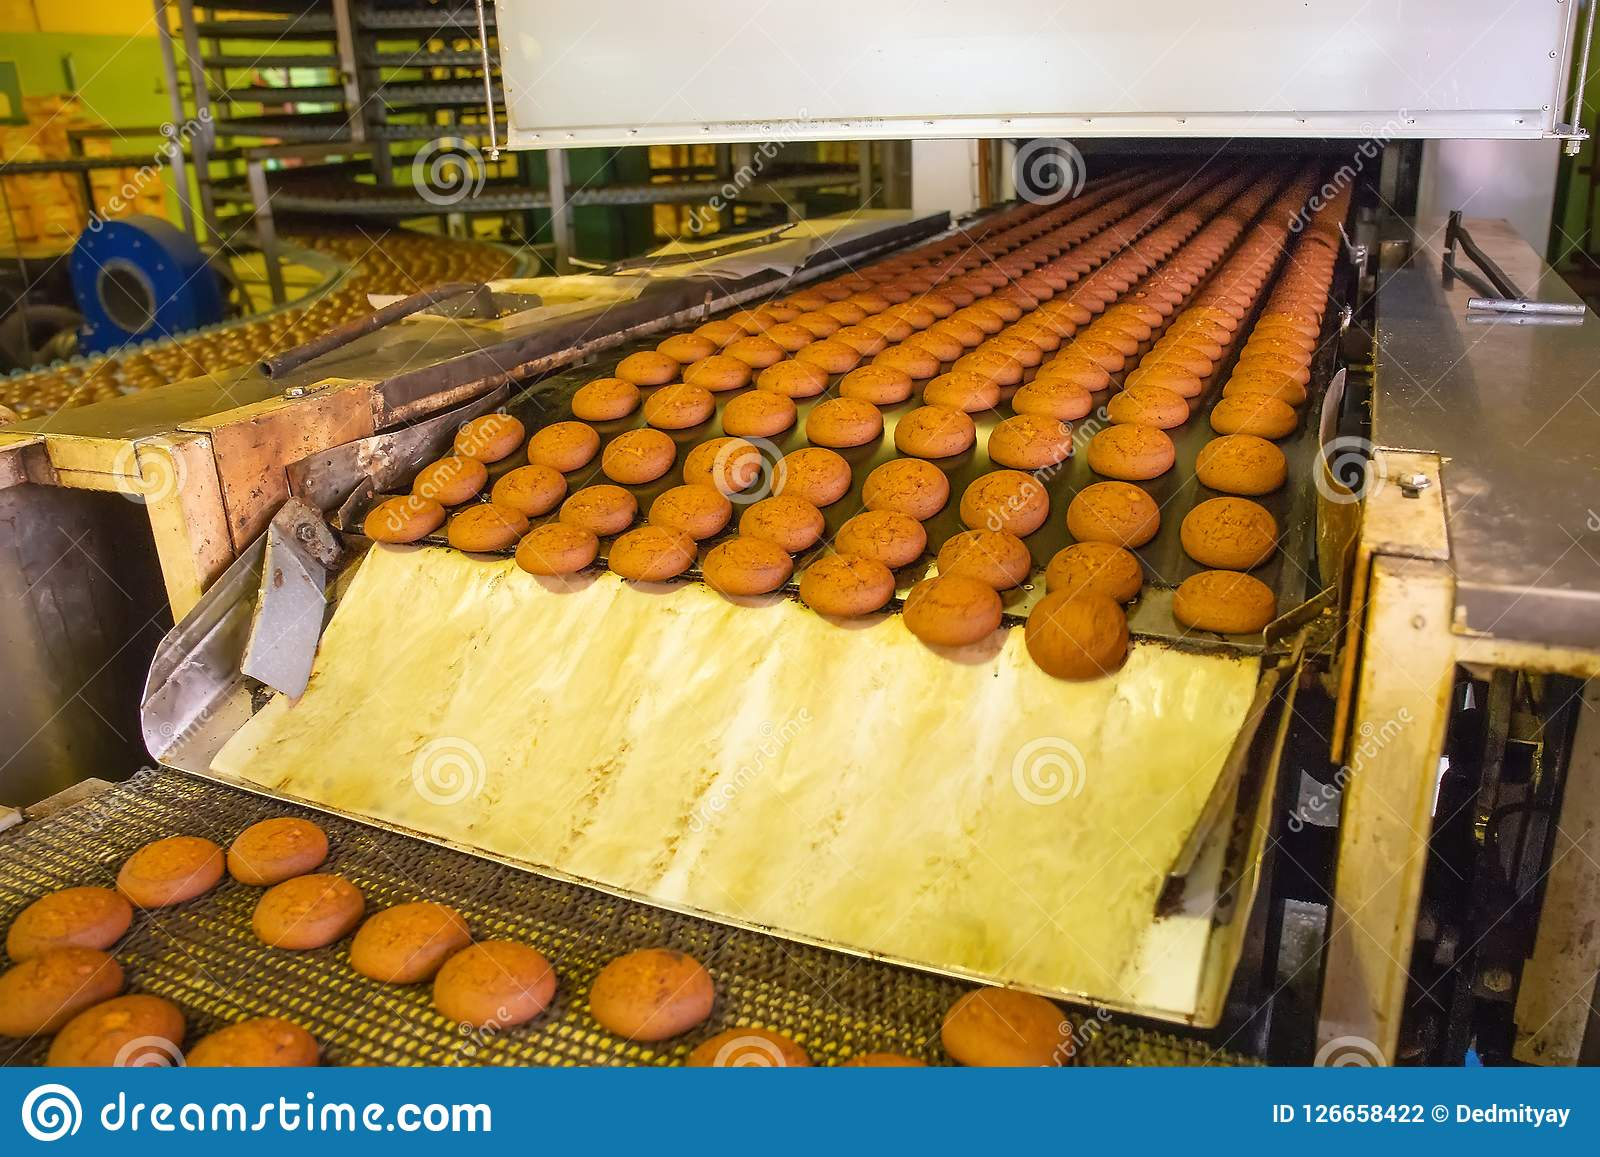 Cuisine Factory Production Line Of Baking Cookies Biscuits On Conveyor Belt In